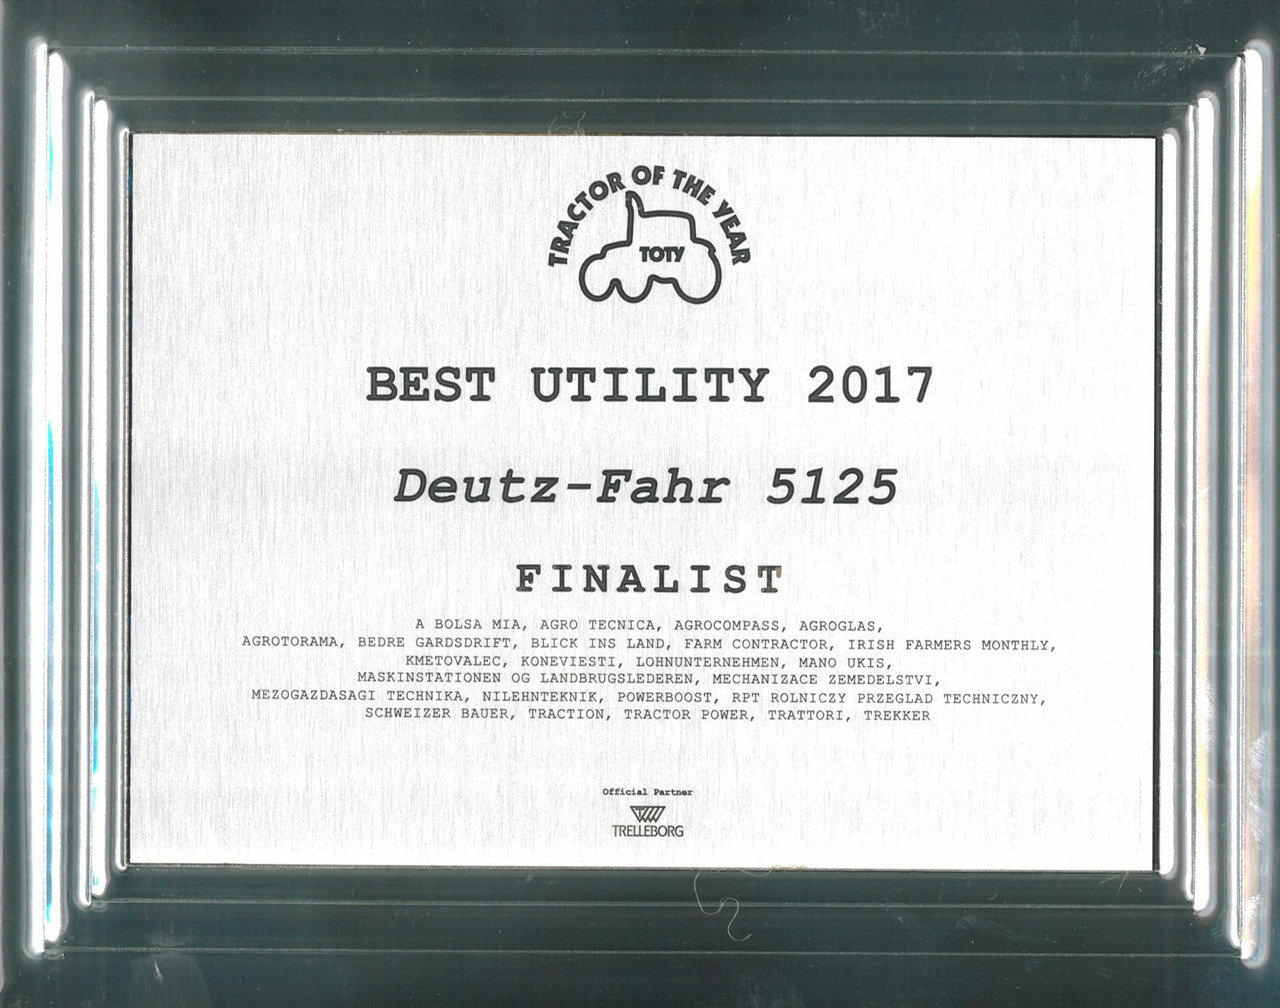 Tractor Of The Year - Best Utility 2017 - Deutz-Fahr 5125 - Finalist